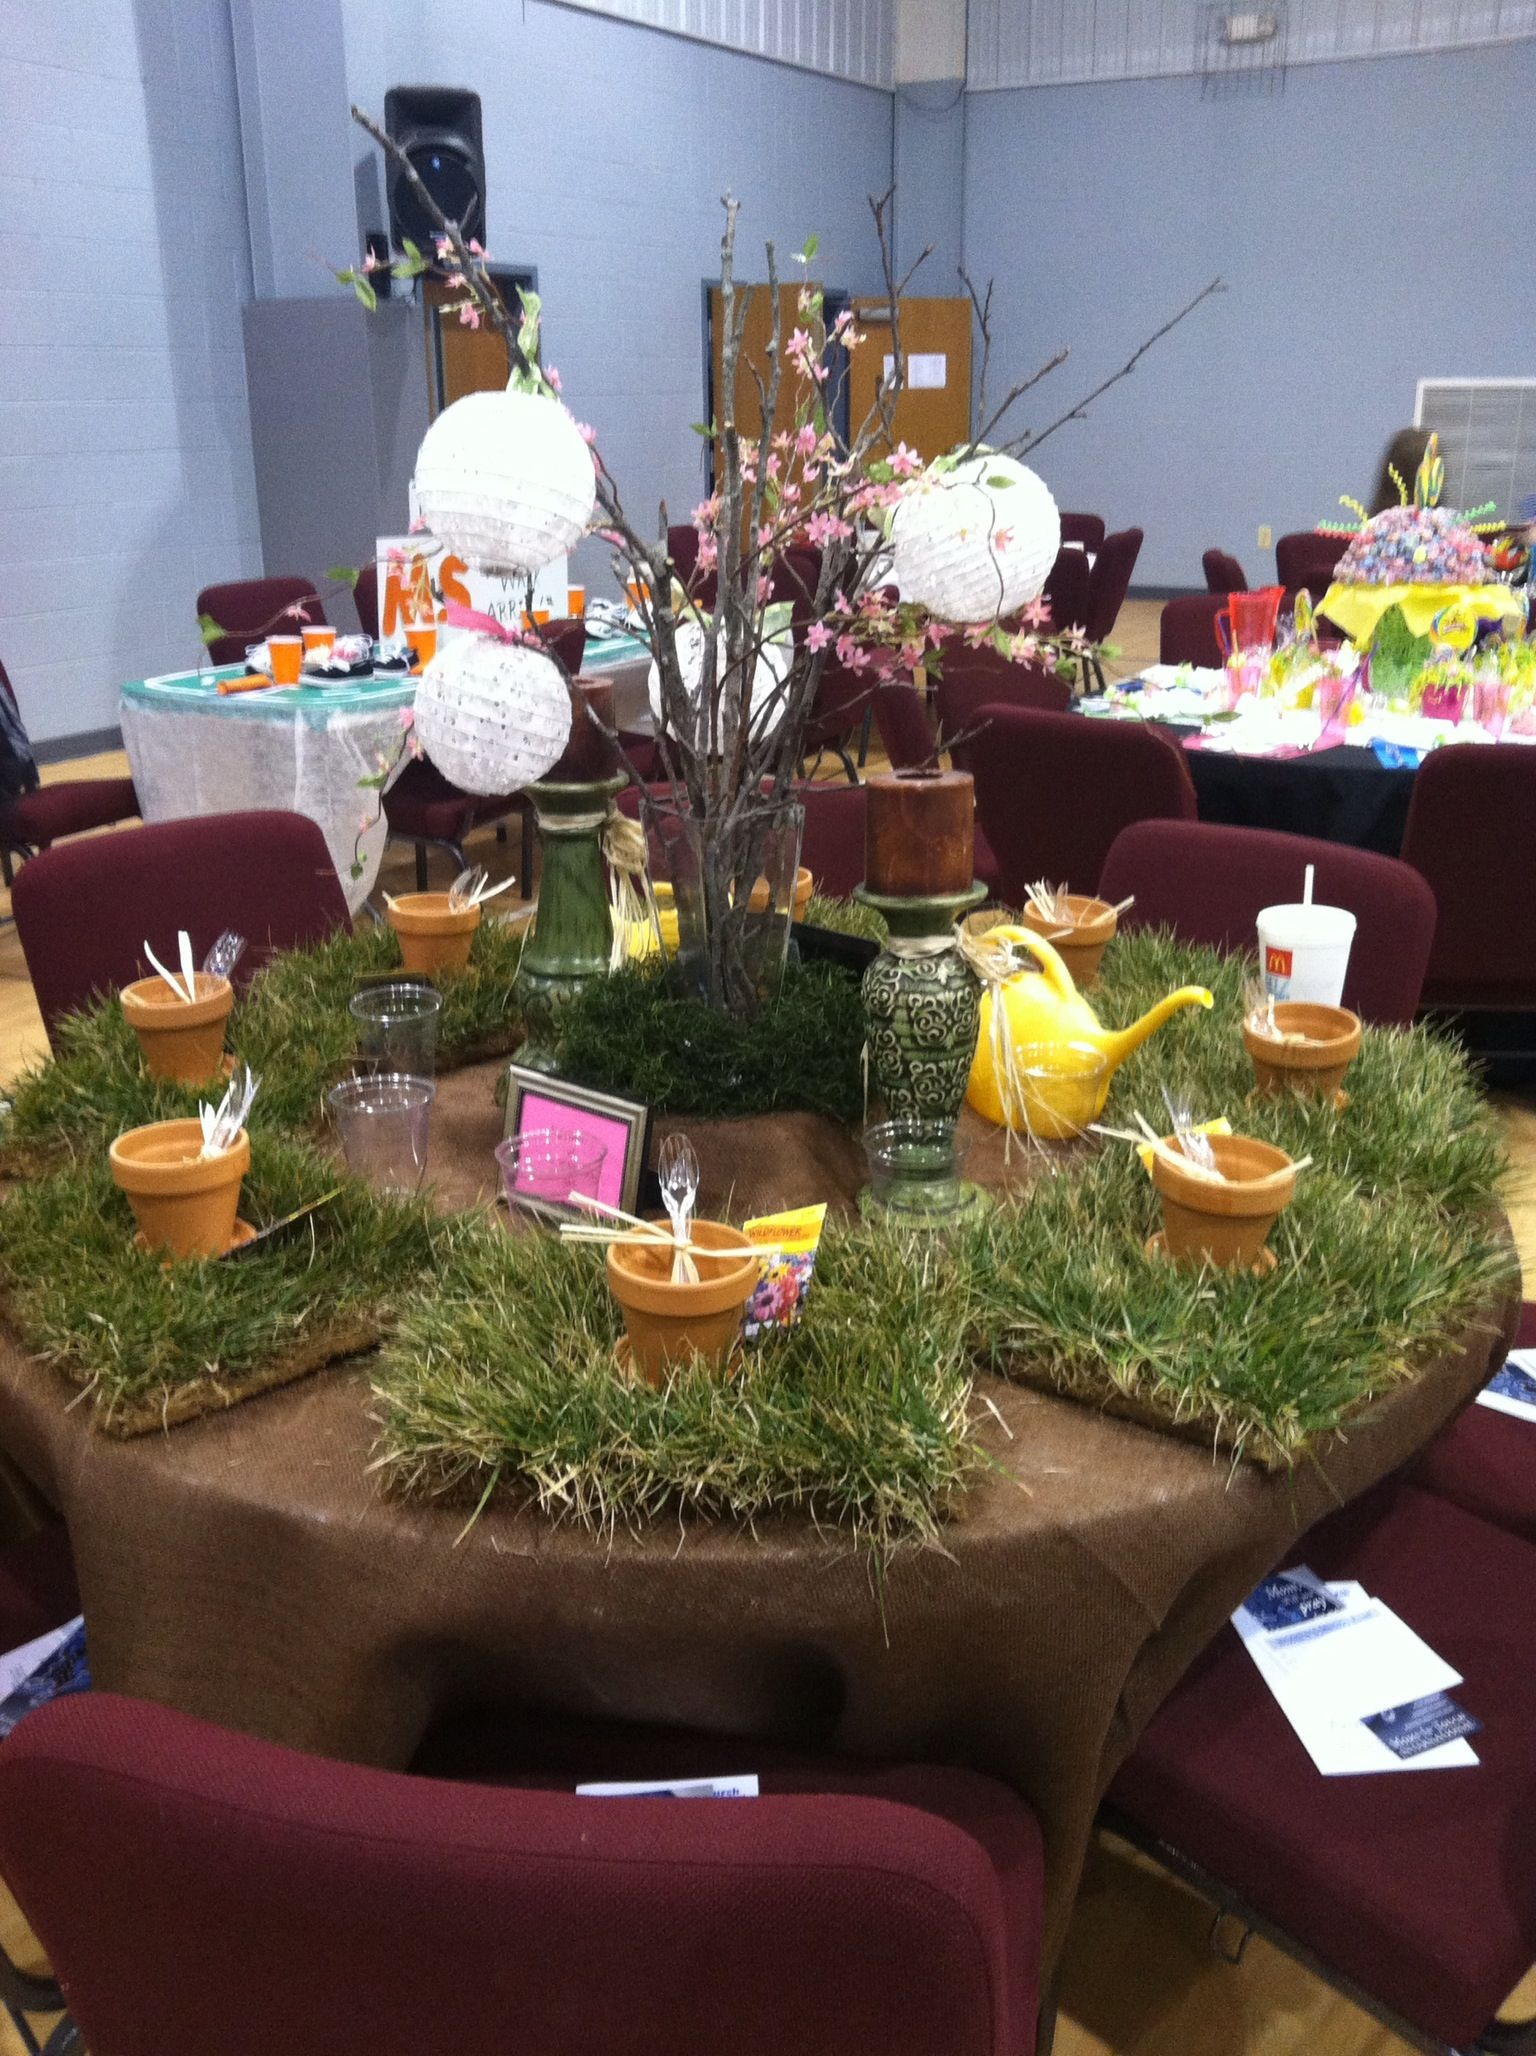 Garden/Outdoor themed table decorations using real sod grass as